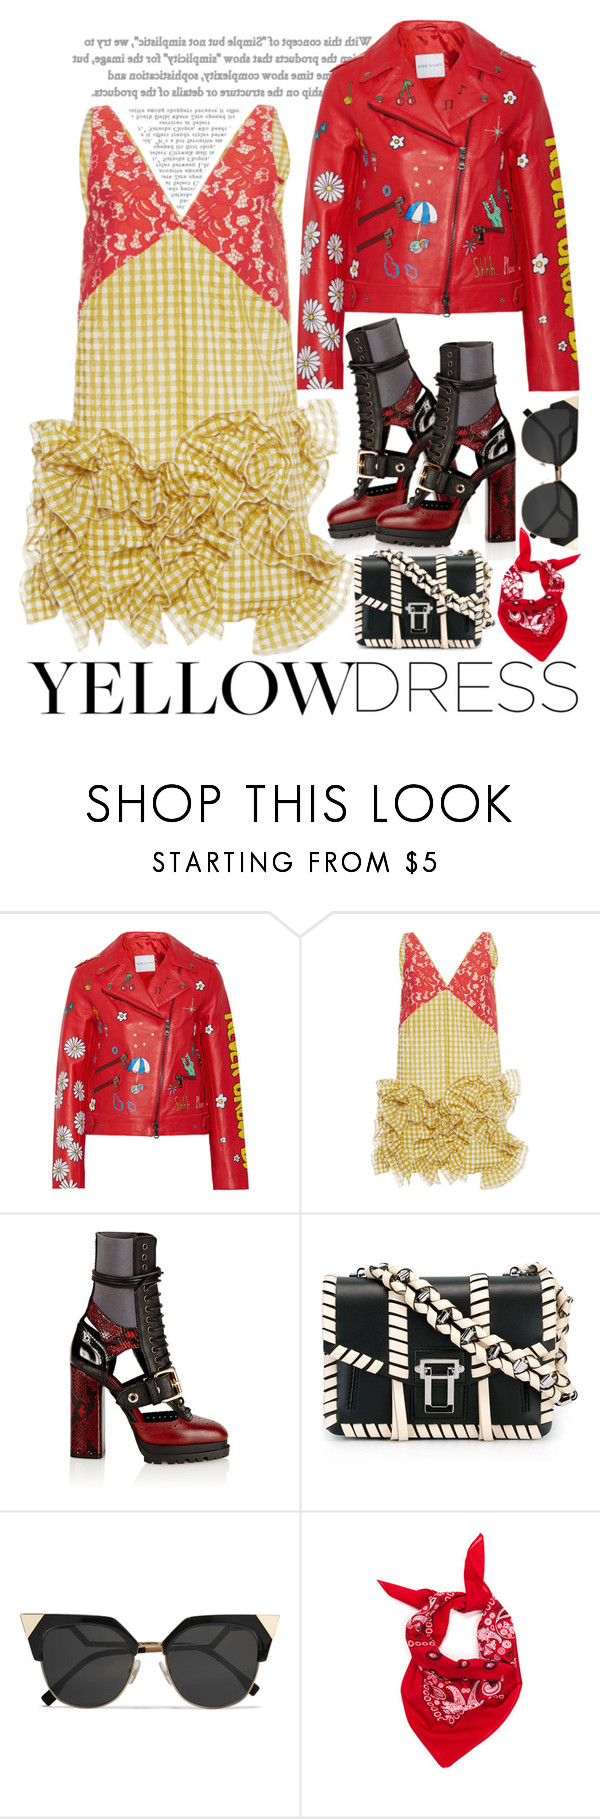 """""""MSGM Yellow Gingham Sleeveless Dress"""" by esterp ❤ liked on Polyvore featuring Mira Mikati, MSGM, Burberry, Proenza Schouler and Fendi"""